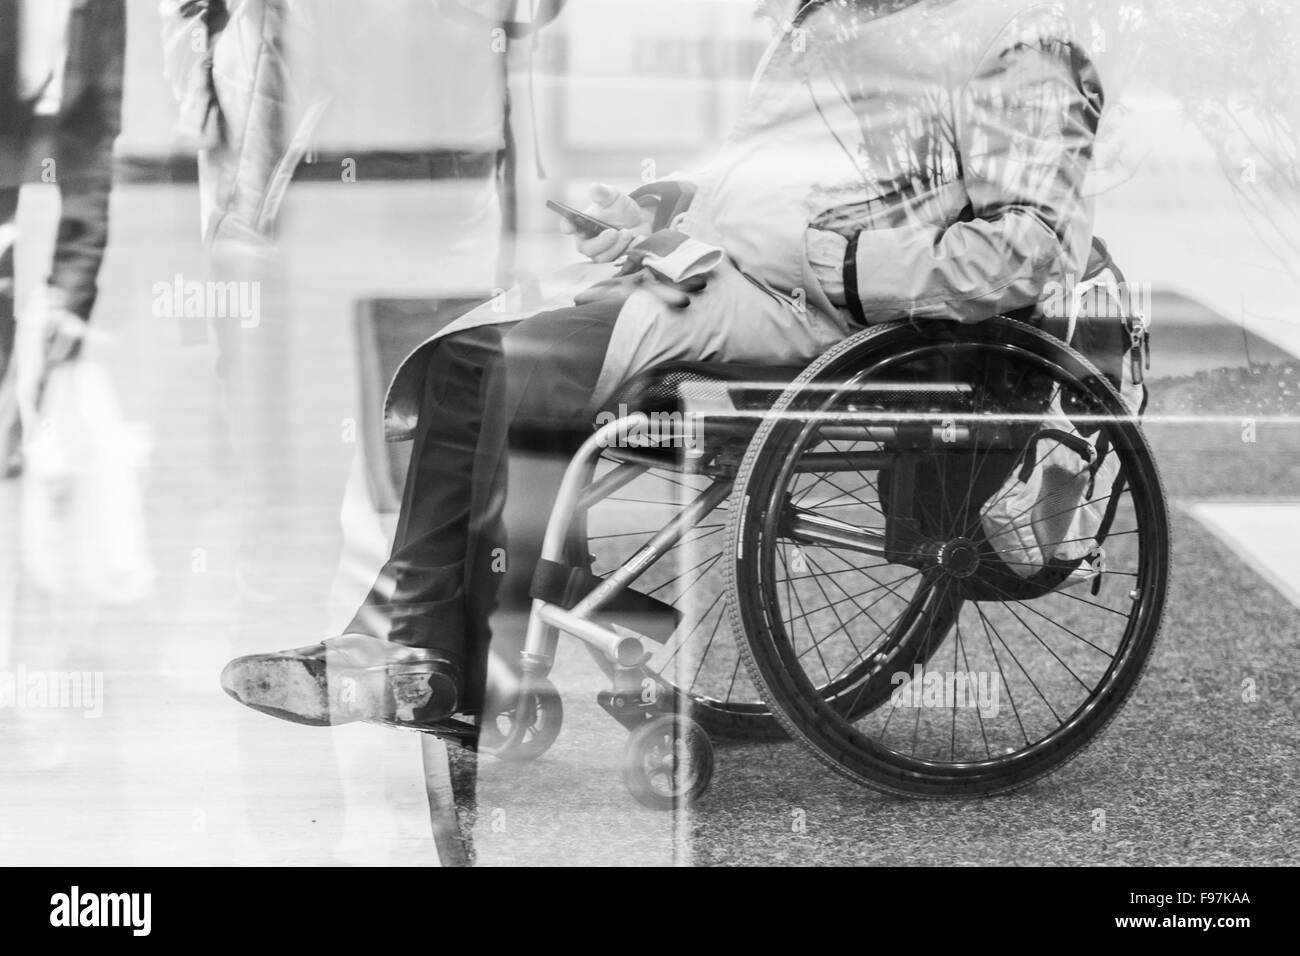 Disabled people active for life. - Stock Image